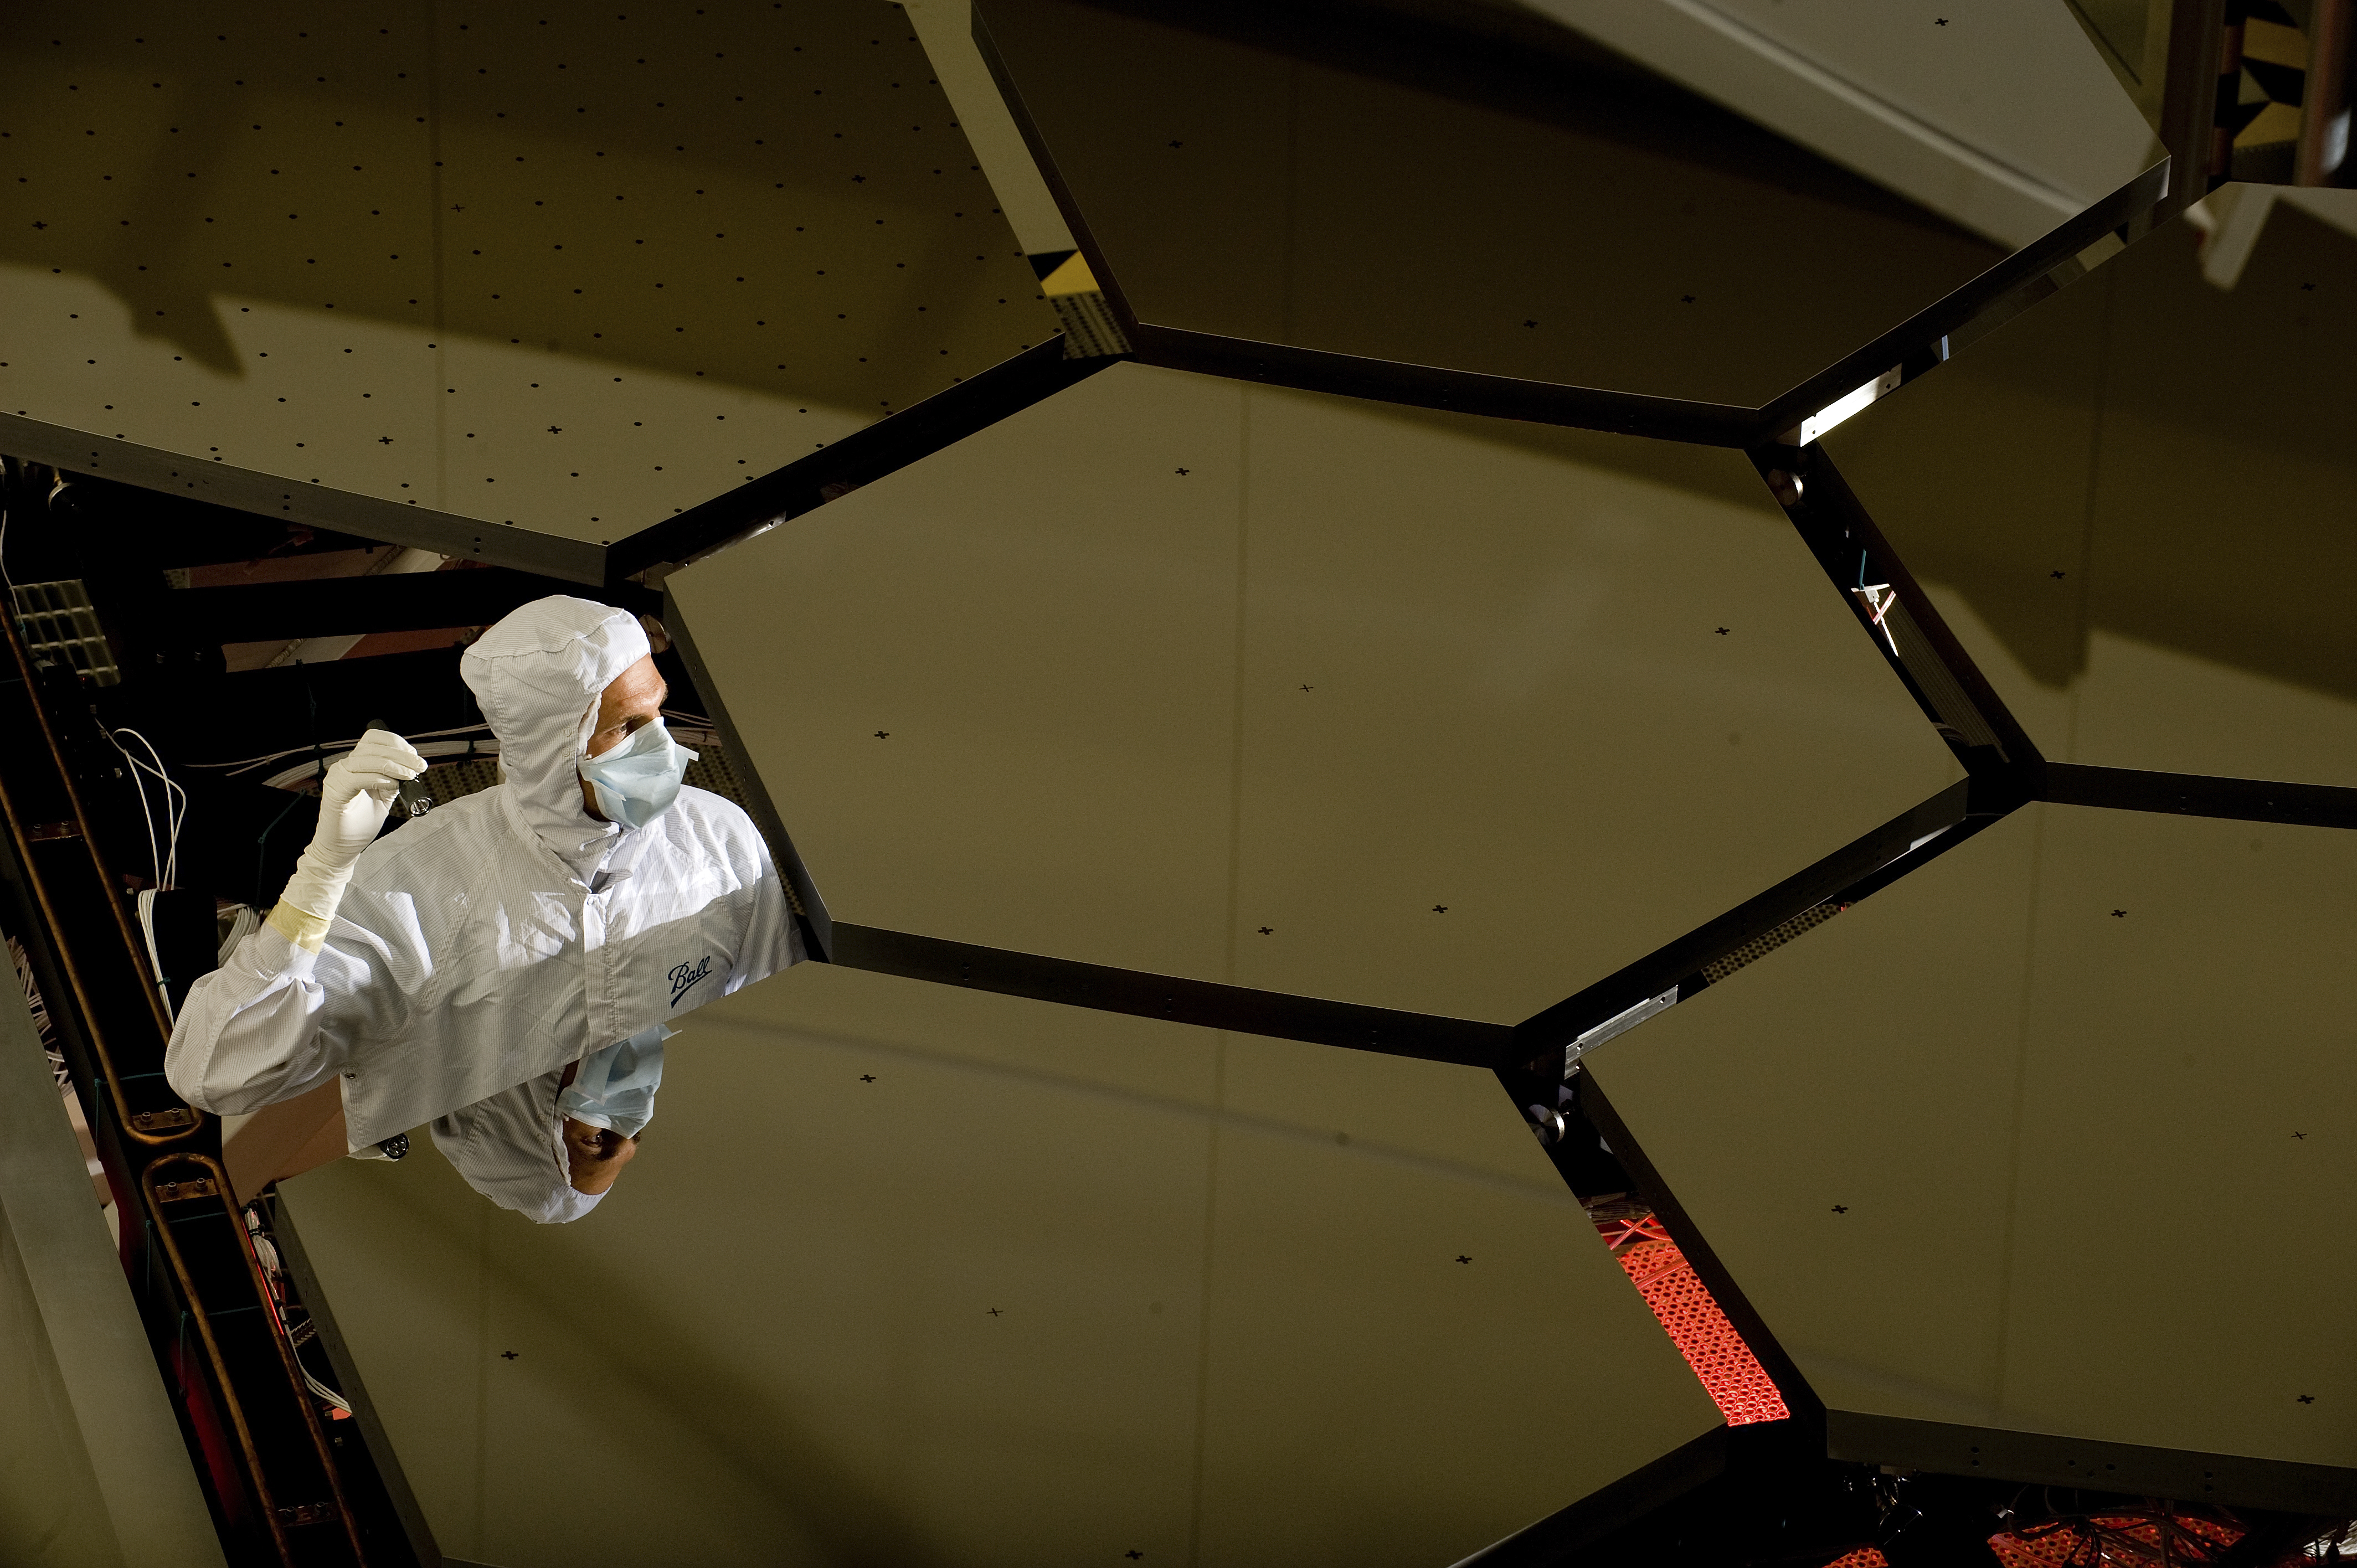 Nasa James Webb Space Telescope Completes Cryogenic